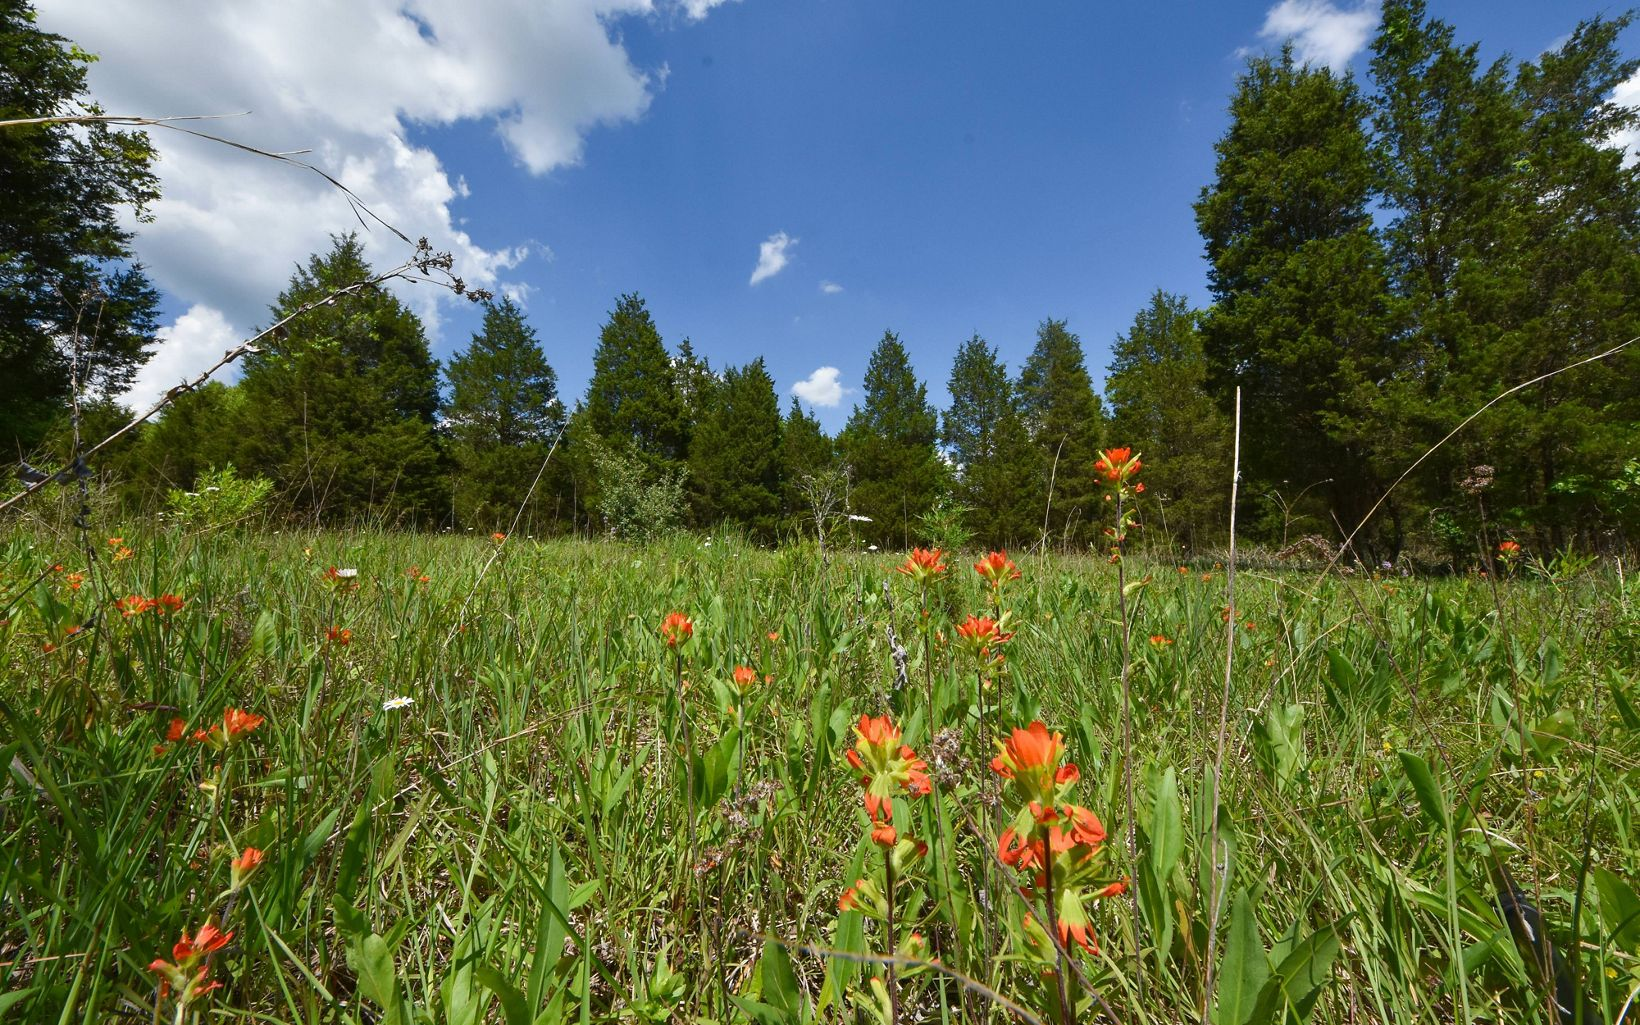 Orange flowers in a meadow surrounded by trees.